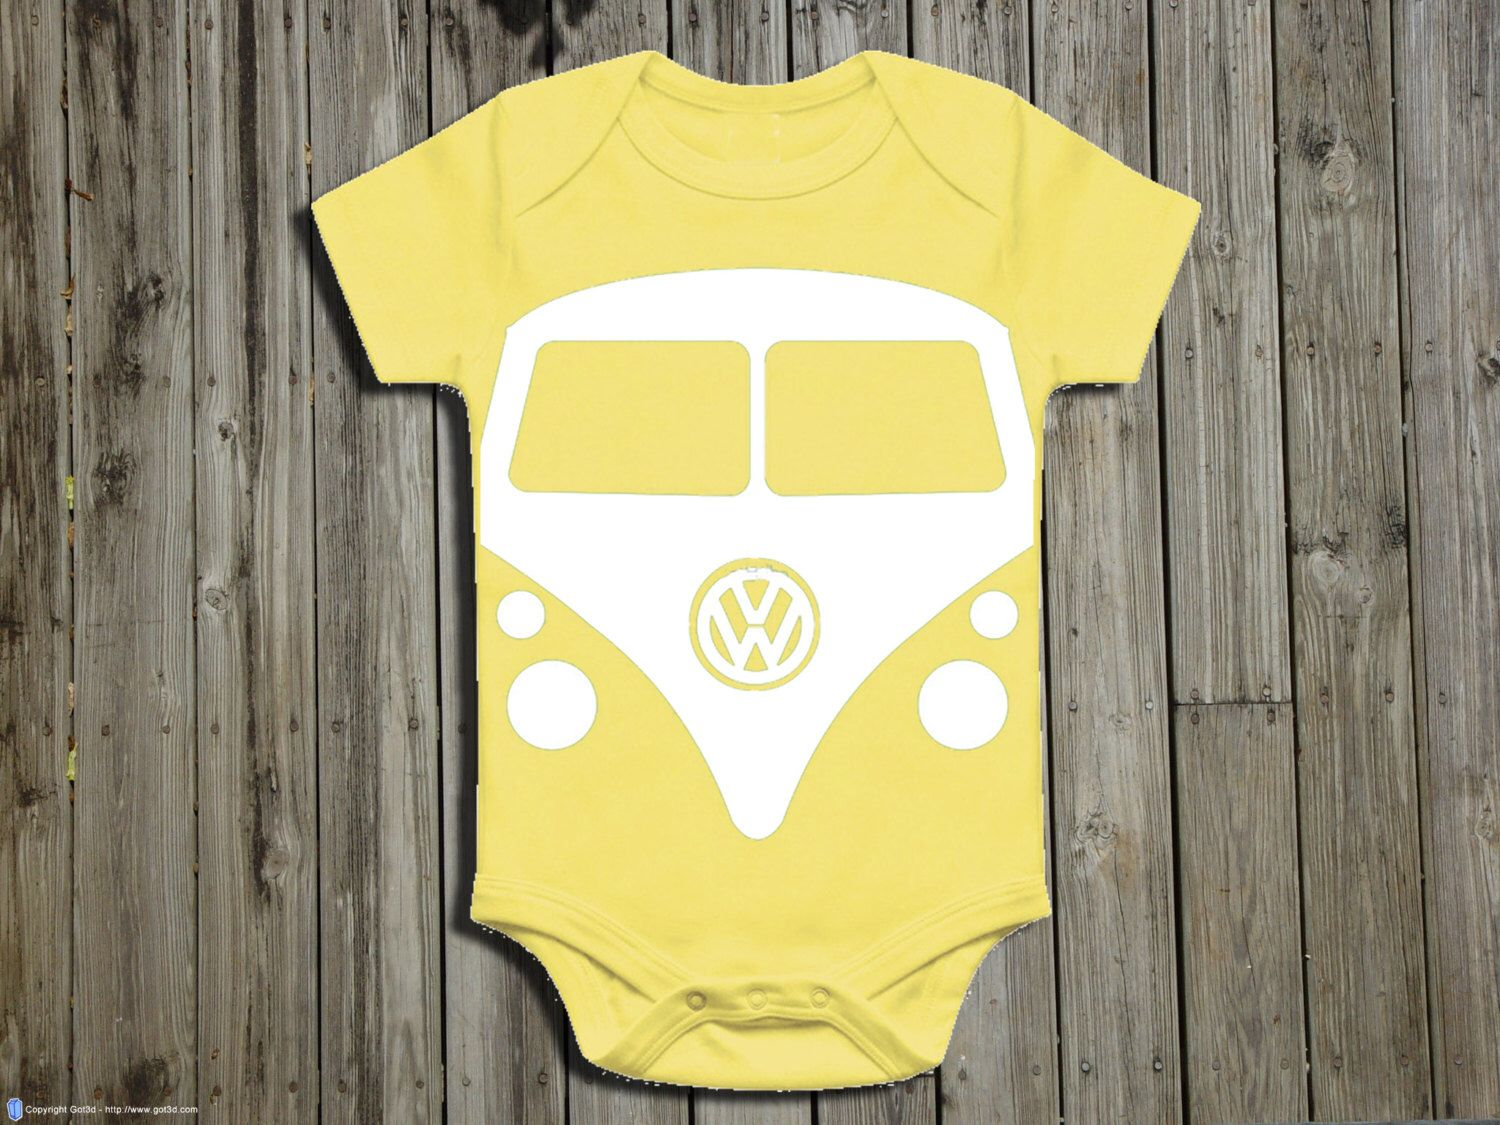 crazy t volkswagen shirts campervan clothing red vw bus category overall comments